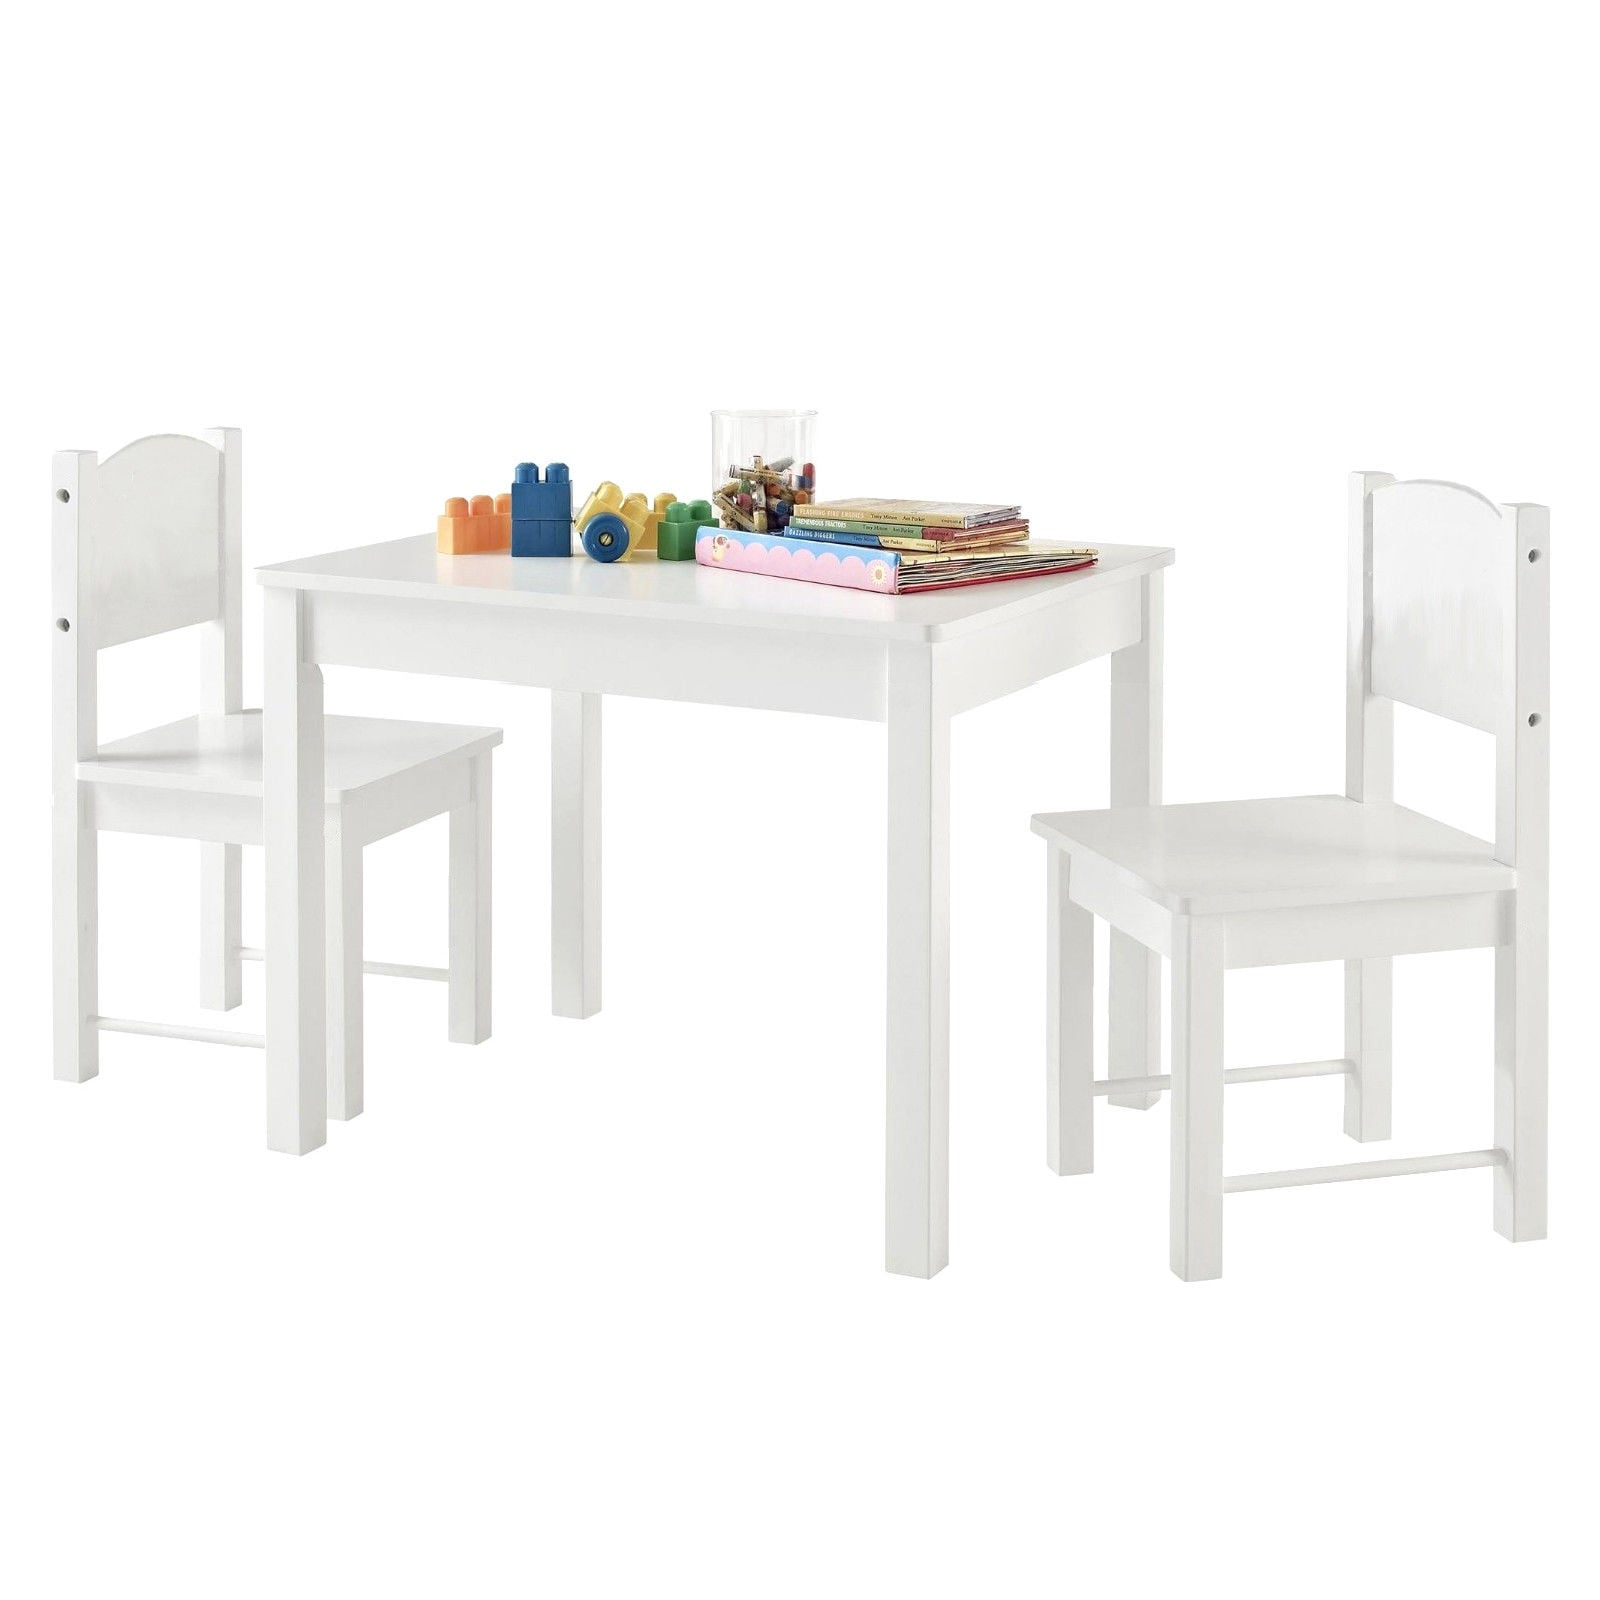 Ordinaire Wooden Kids Table Sturdy And Entertainment Table Set With 2 Chairs White